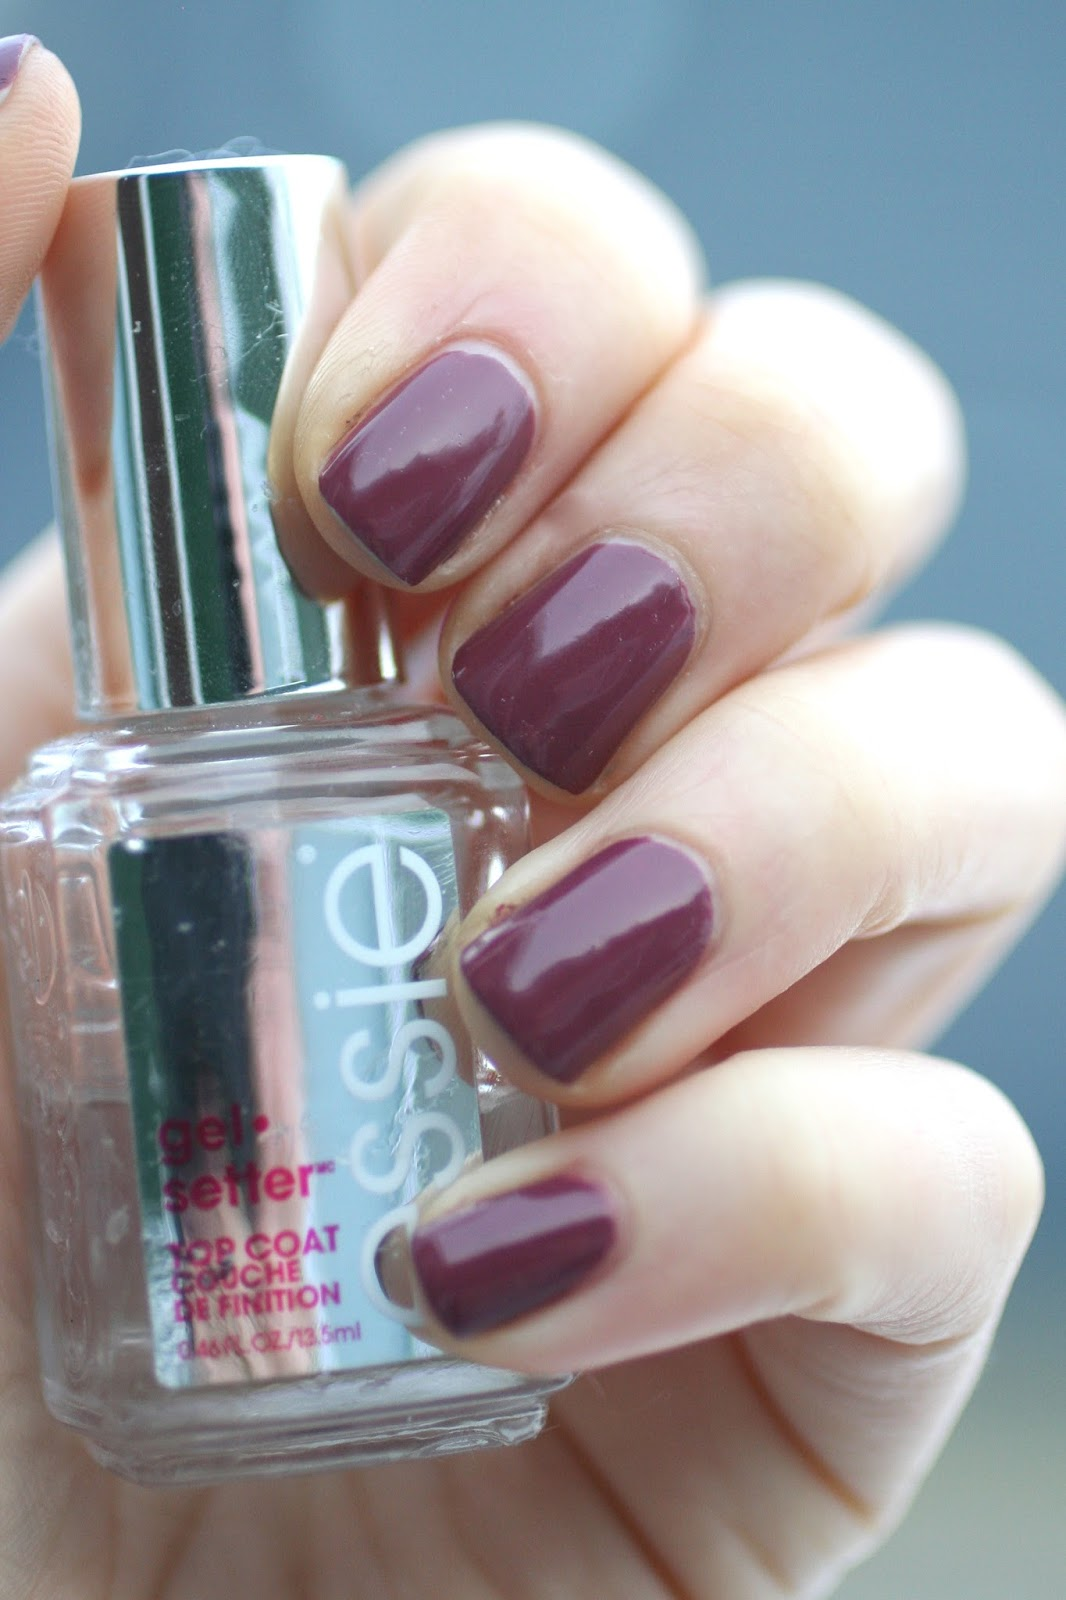 Essie Gel Setter : Top Coat Wear Test & Review | Essie Envy